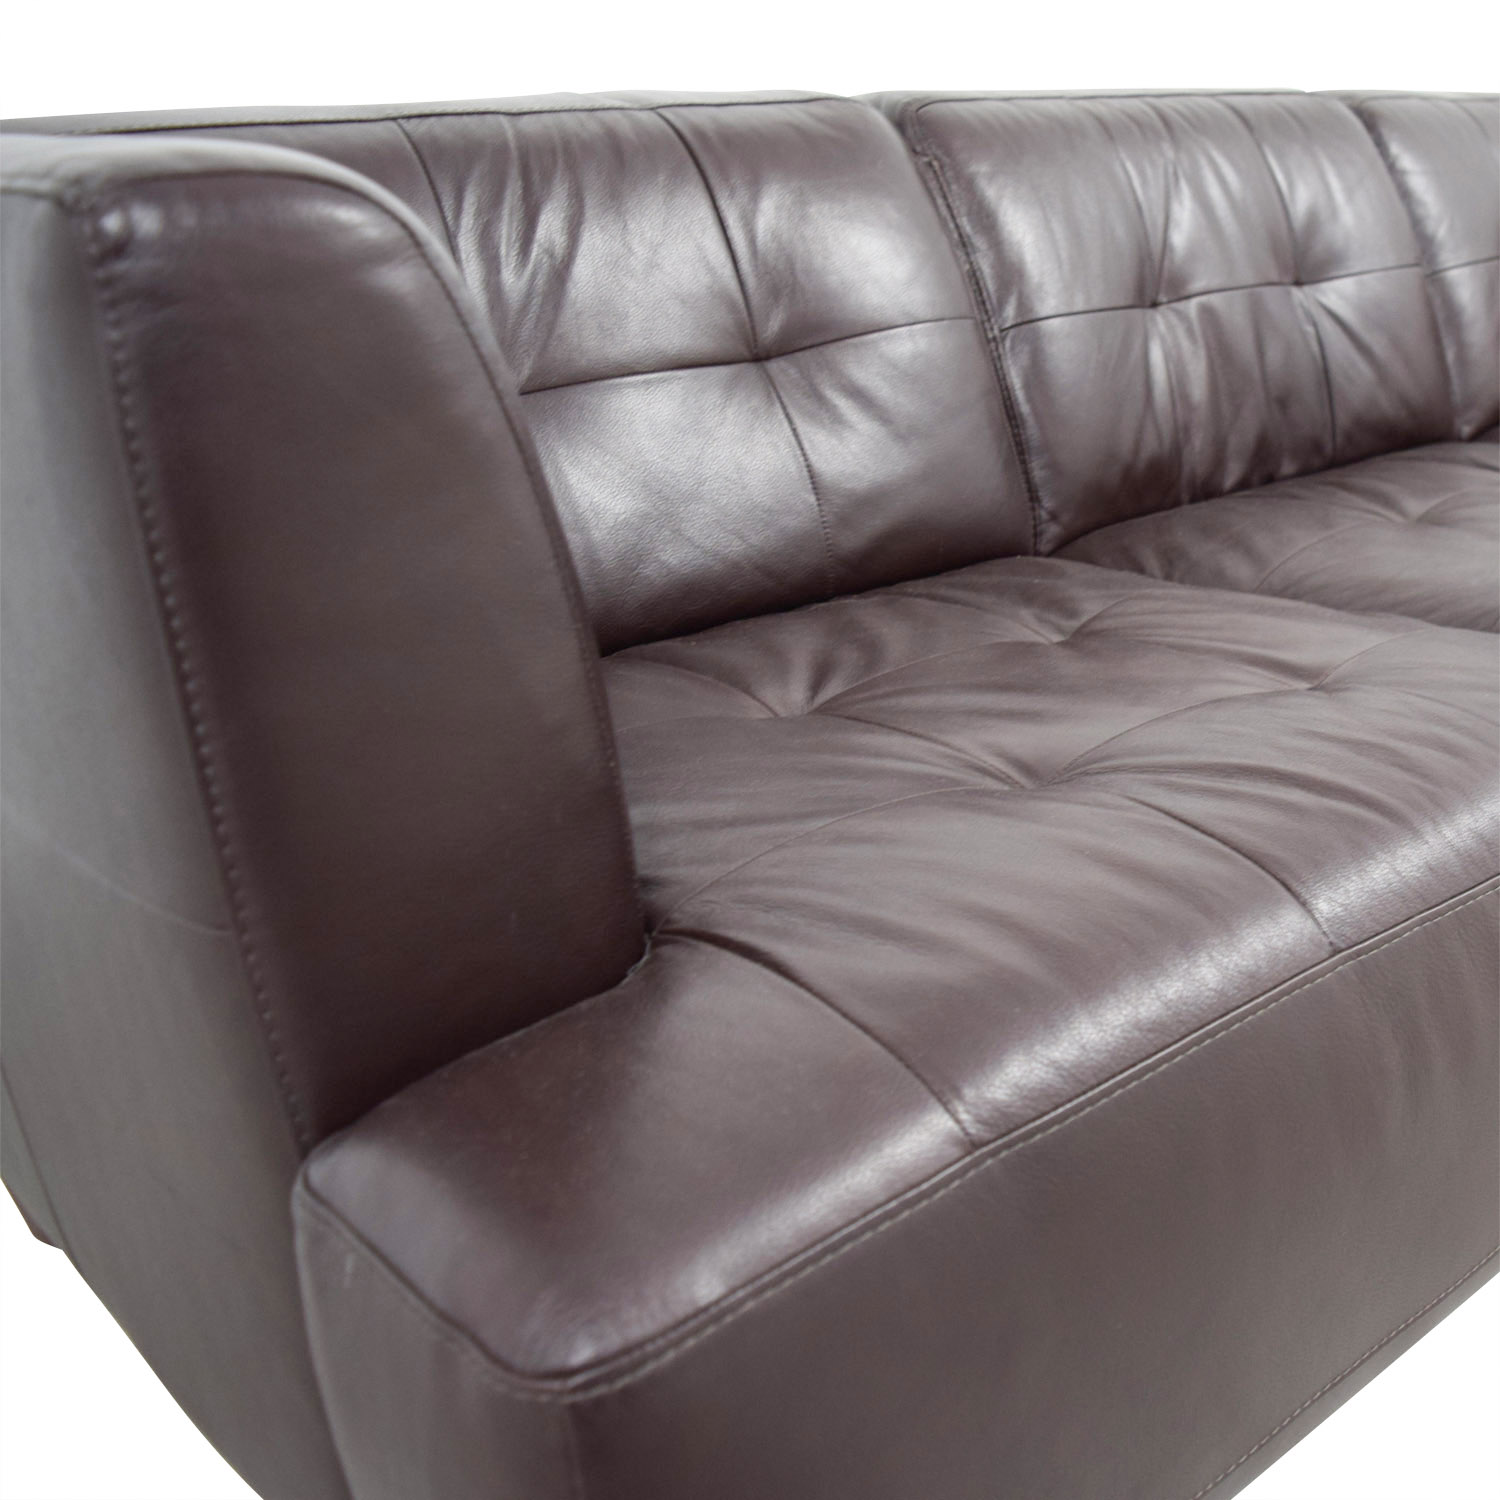 shop Macys Brown Tufted Leather Couch Macys